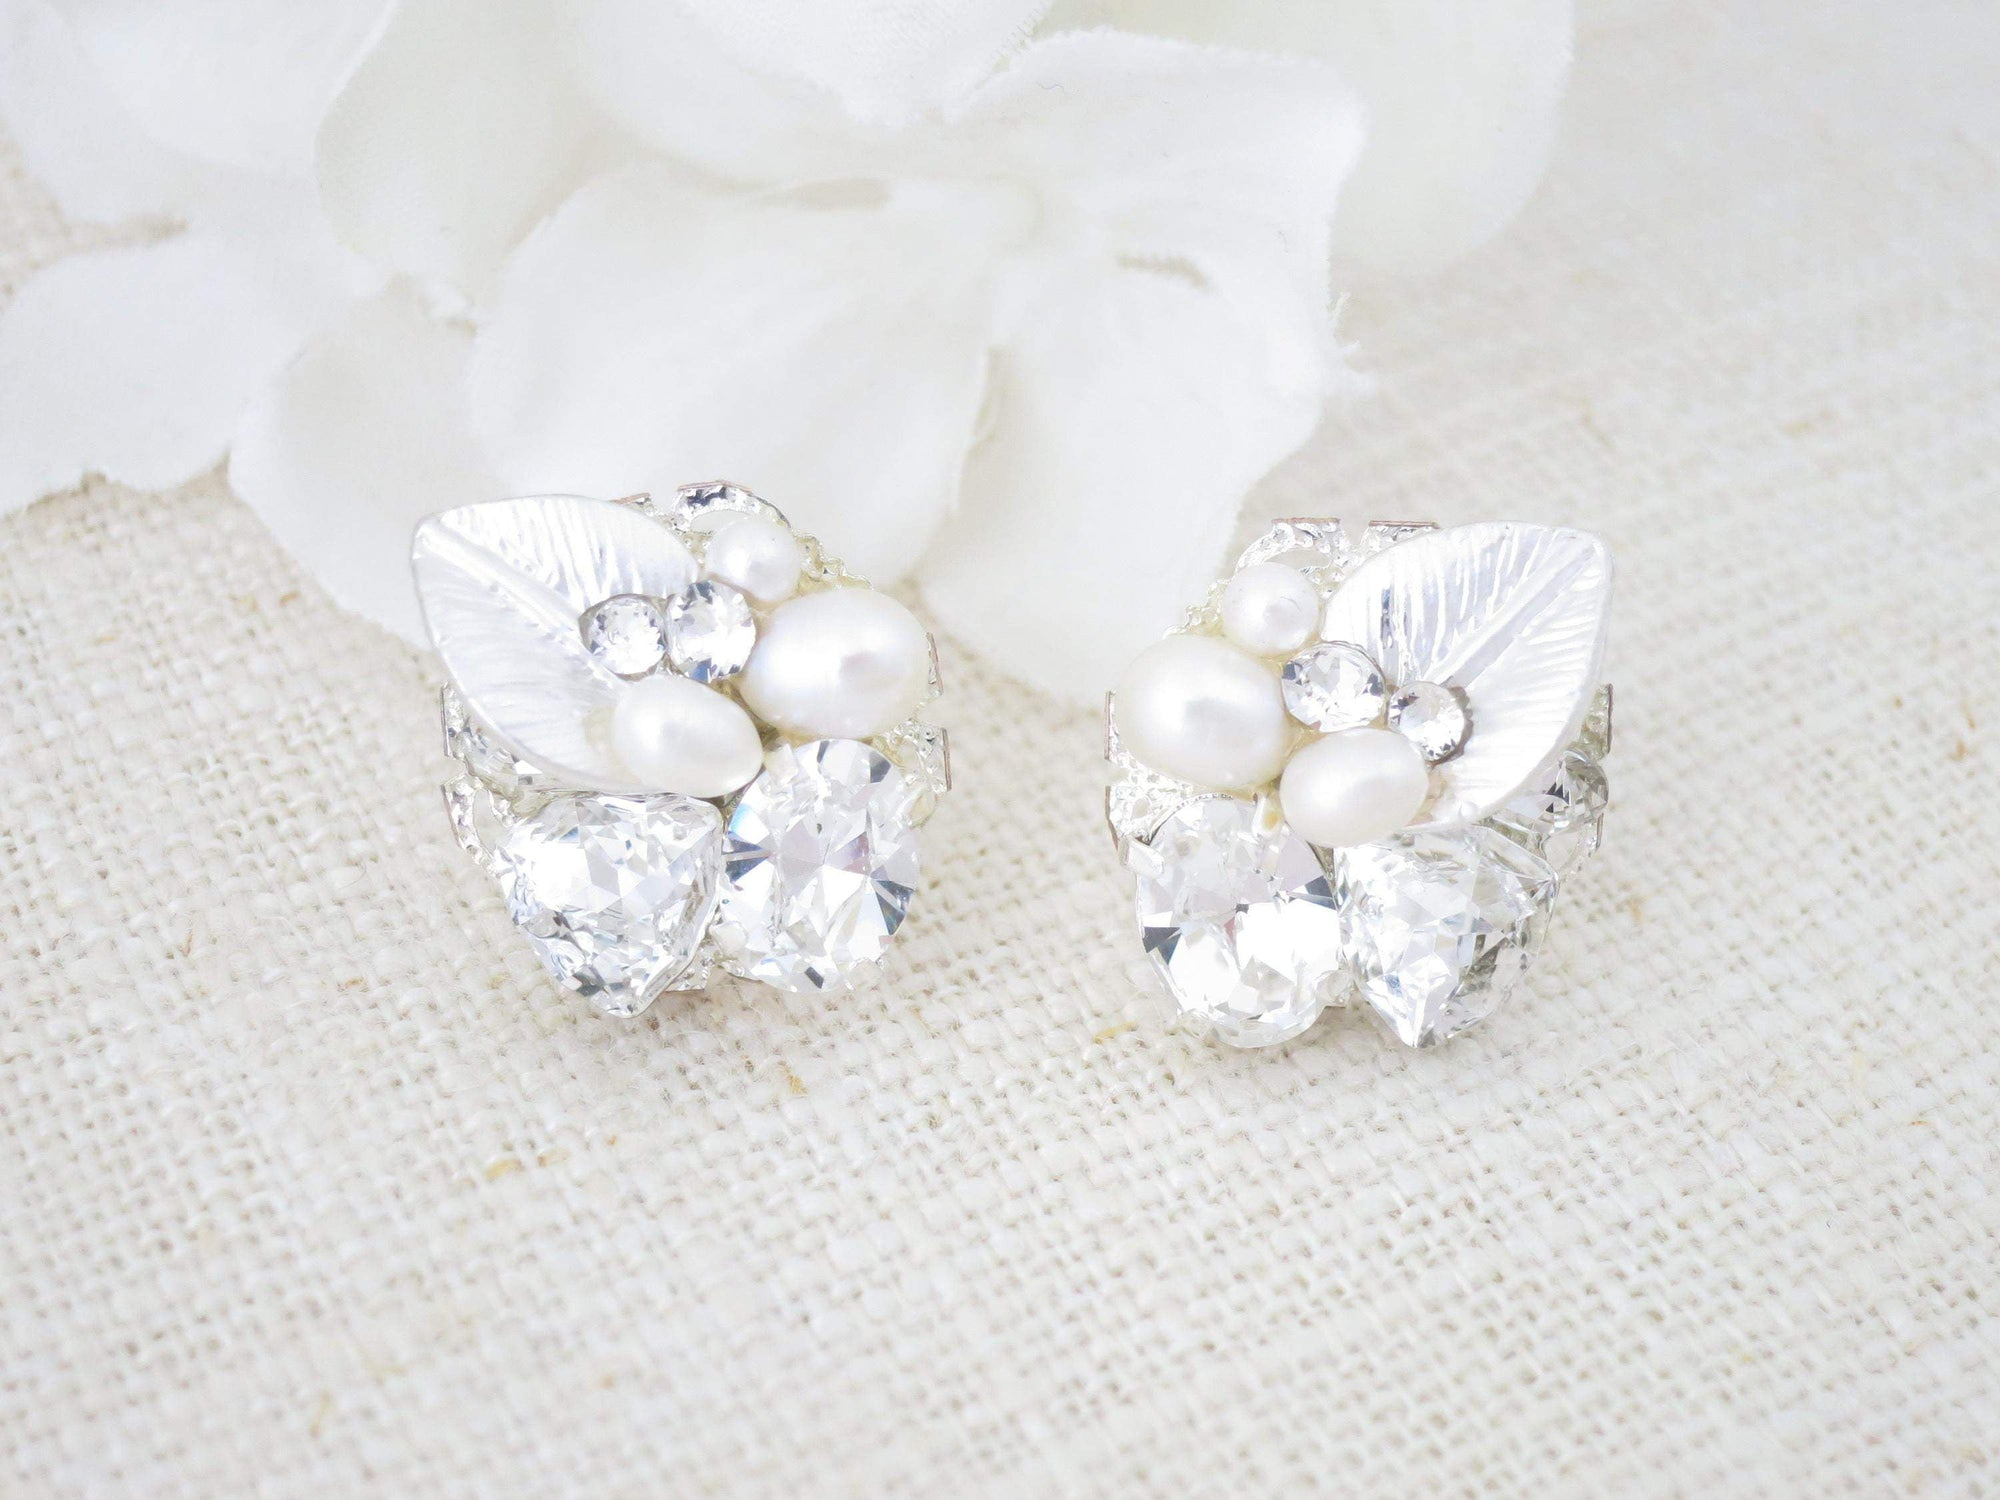 BRISTOL:  Dainty Rhinestone Leaf Earrings - BlingBaddaBoom - Minimalist, Vintage, Modern Wedding and Bridal Jewelry